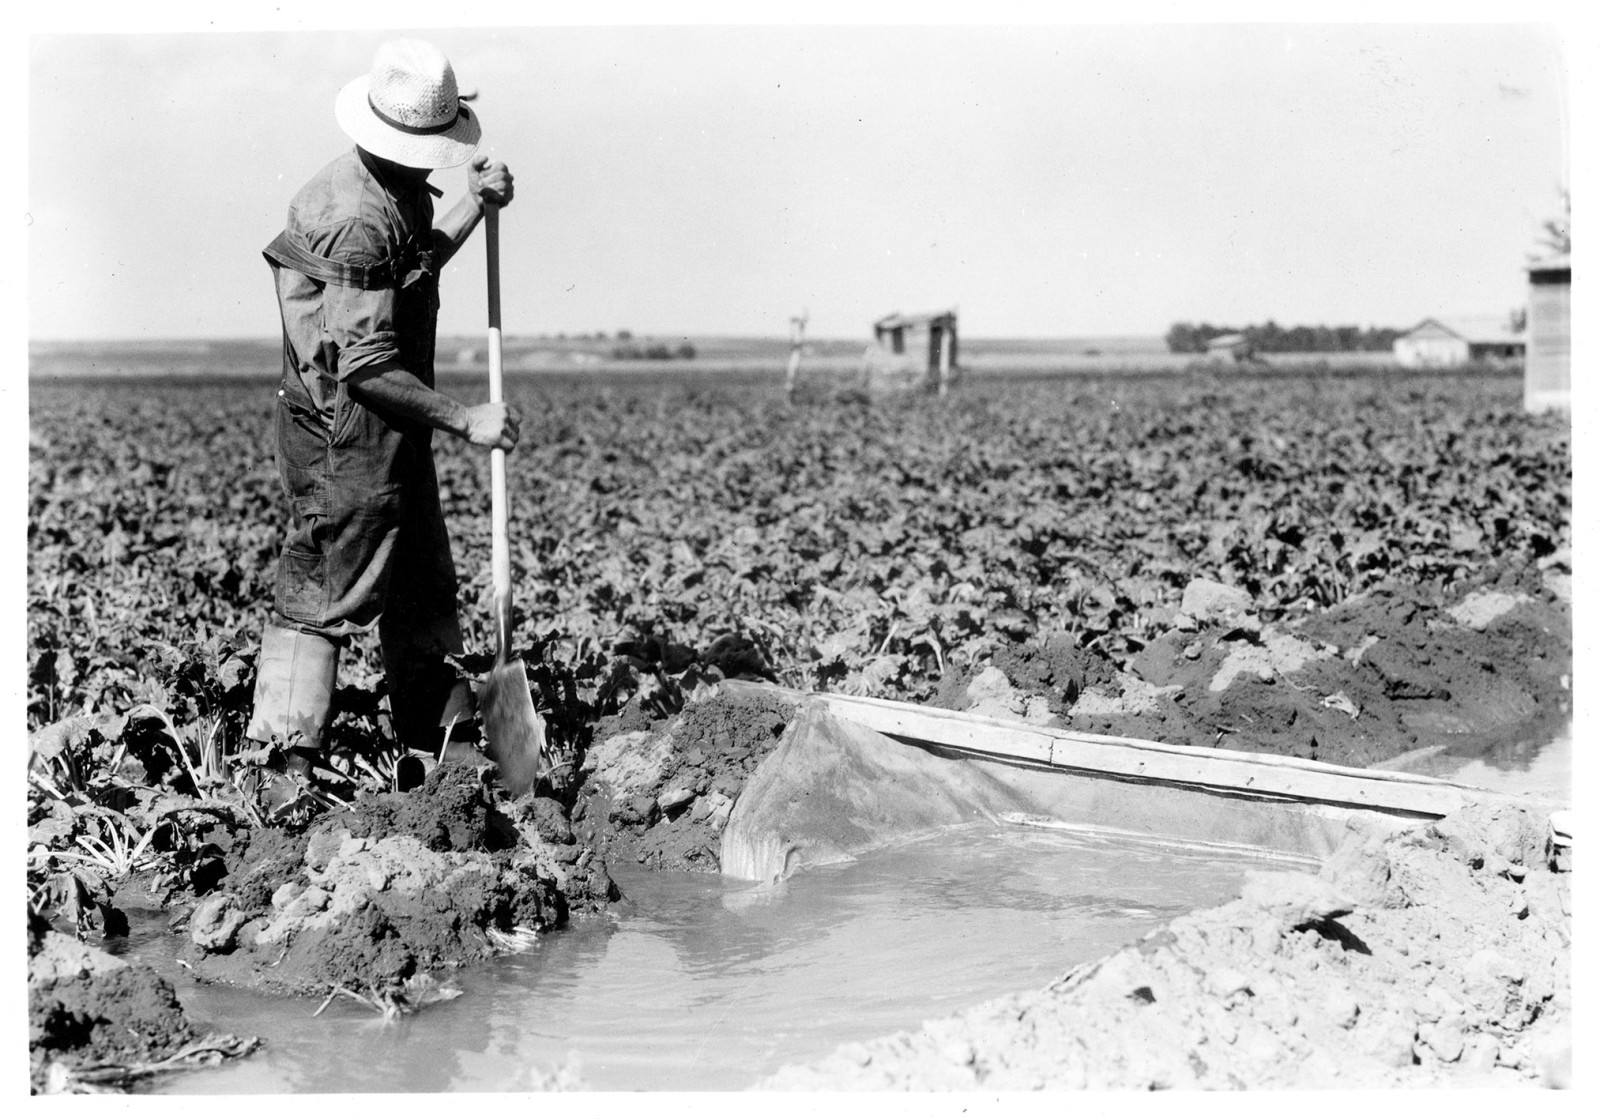 A man adjusts the flow of water to his field in the North Platte Valley of Nebraska. (Nebraska State Historical Society)